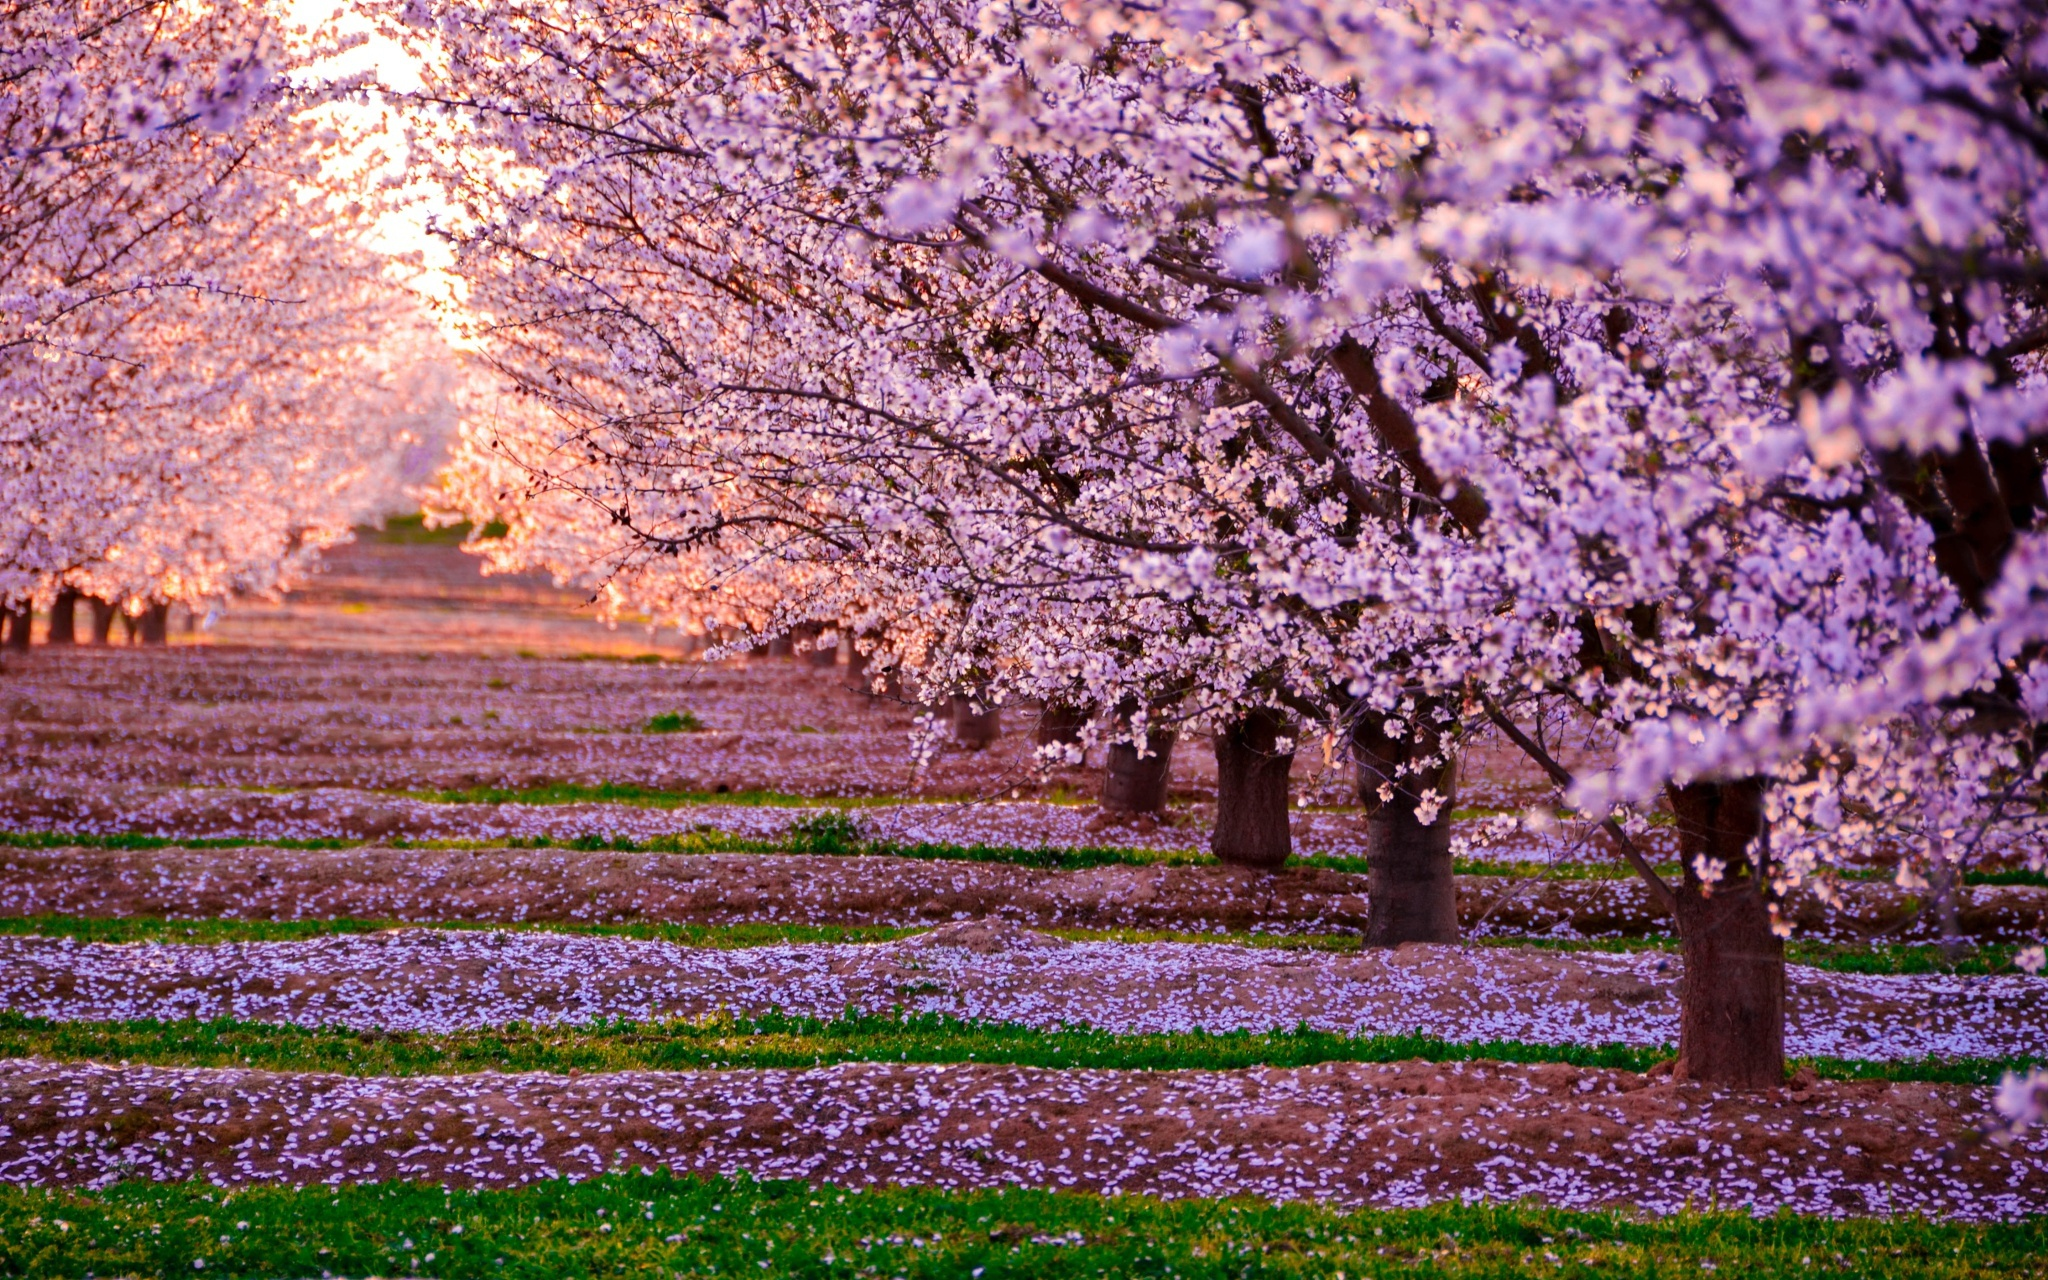 Blossom nature pink flowers trees hd nature 4k wallpapers images blossom nature pink flowers trees mightylinksfo